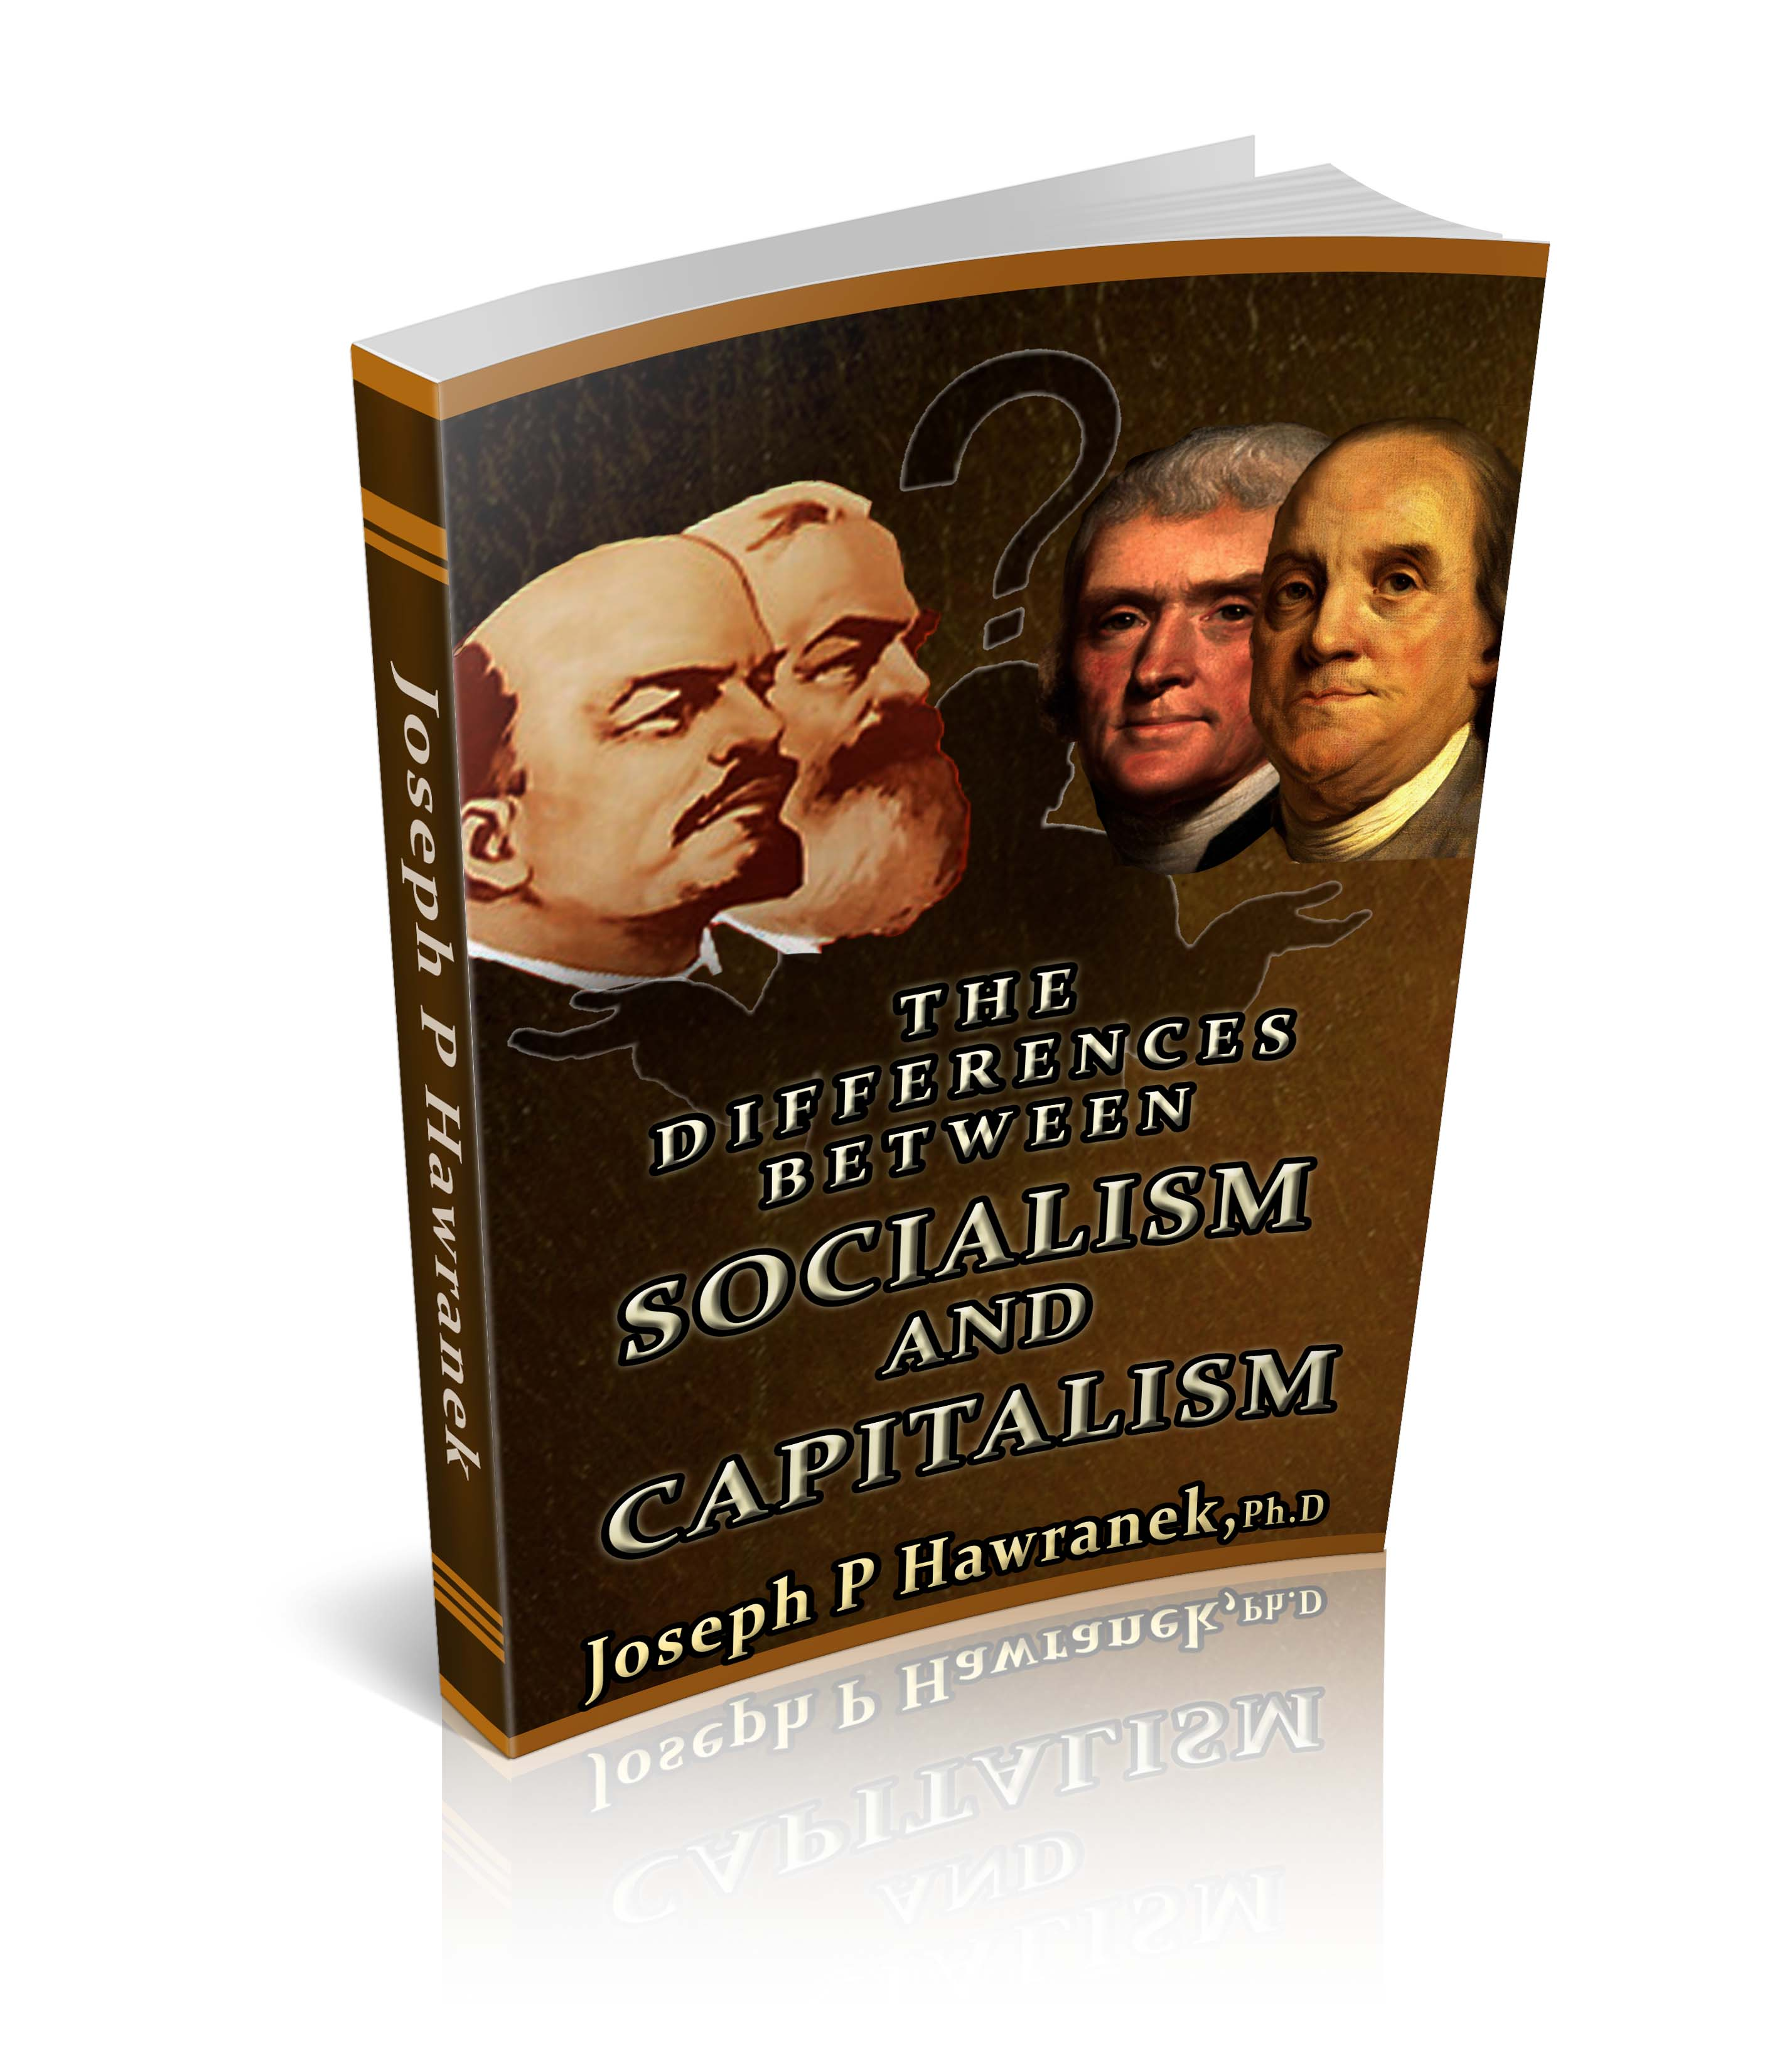 the diference between socialism and capitalism